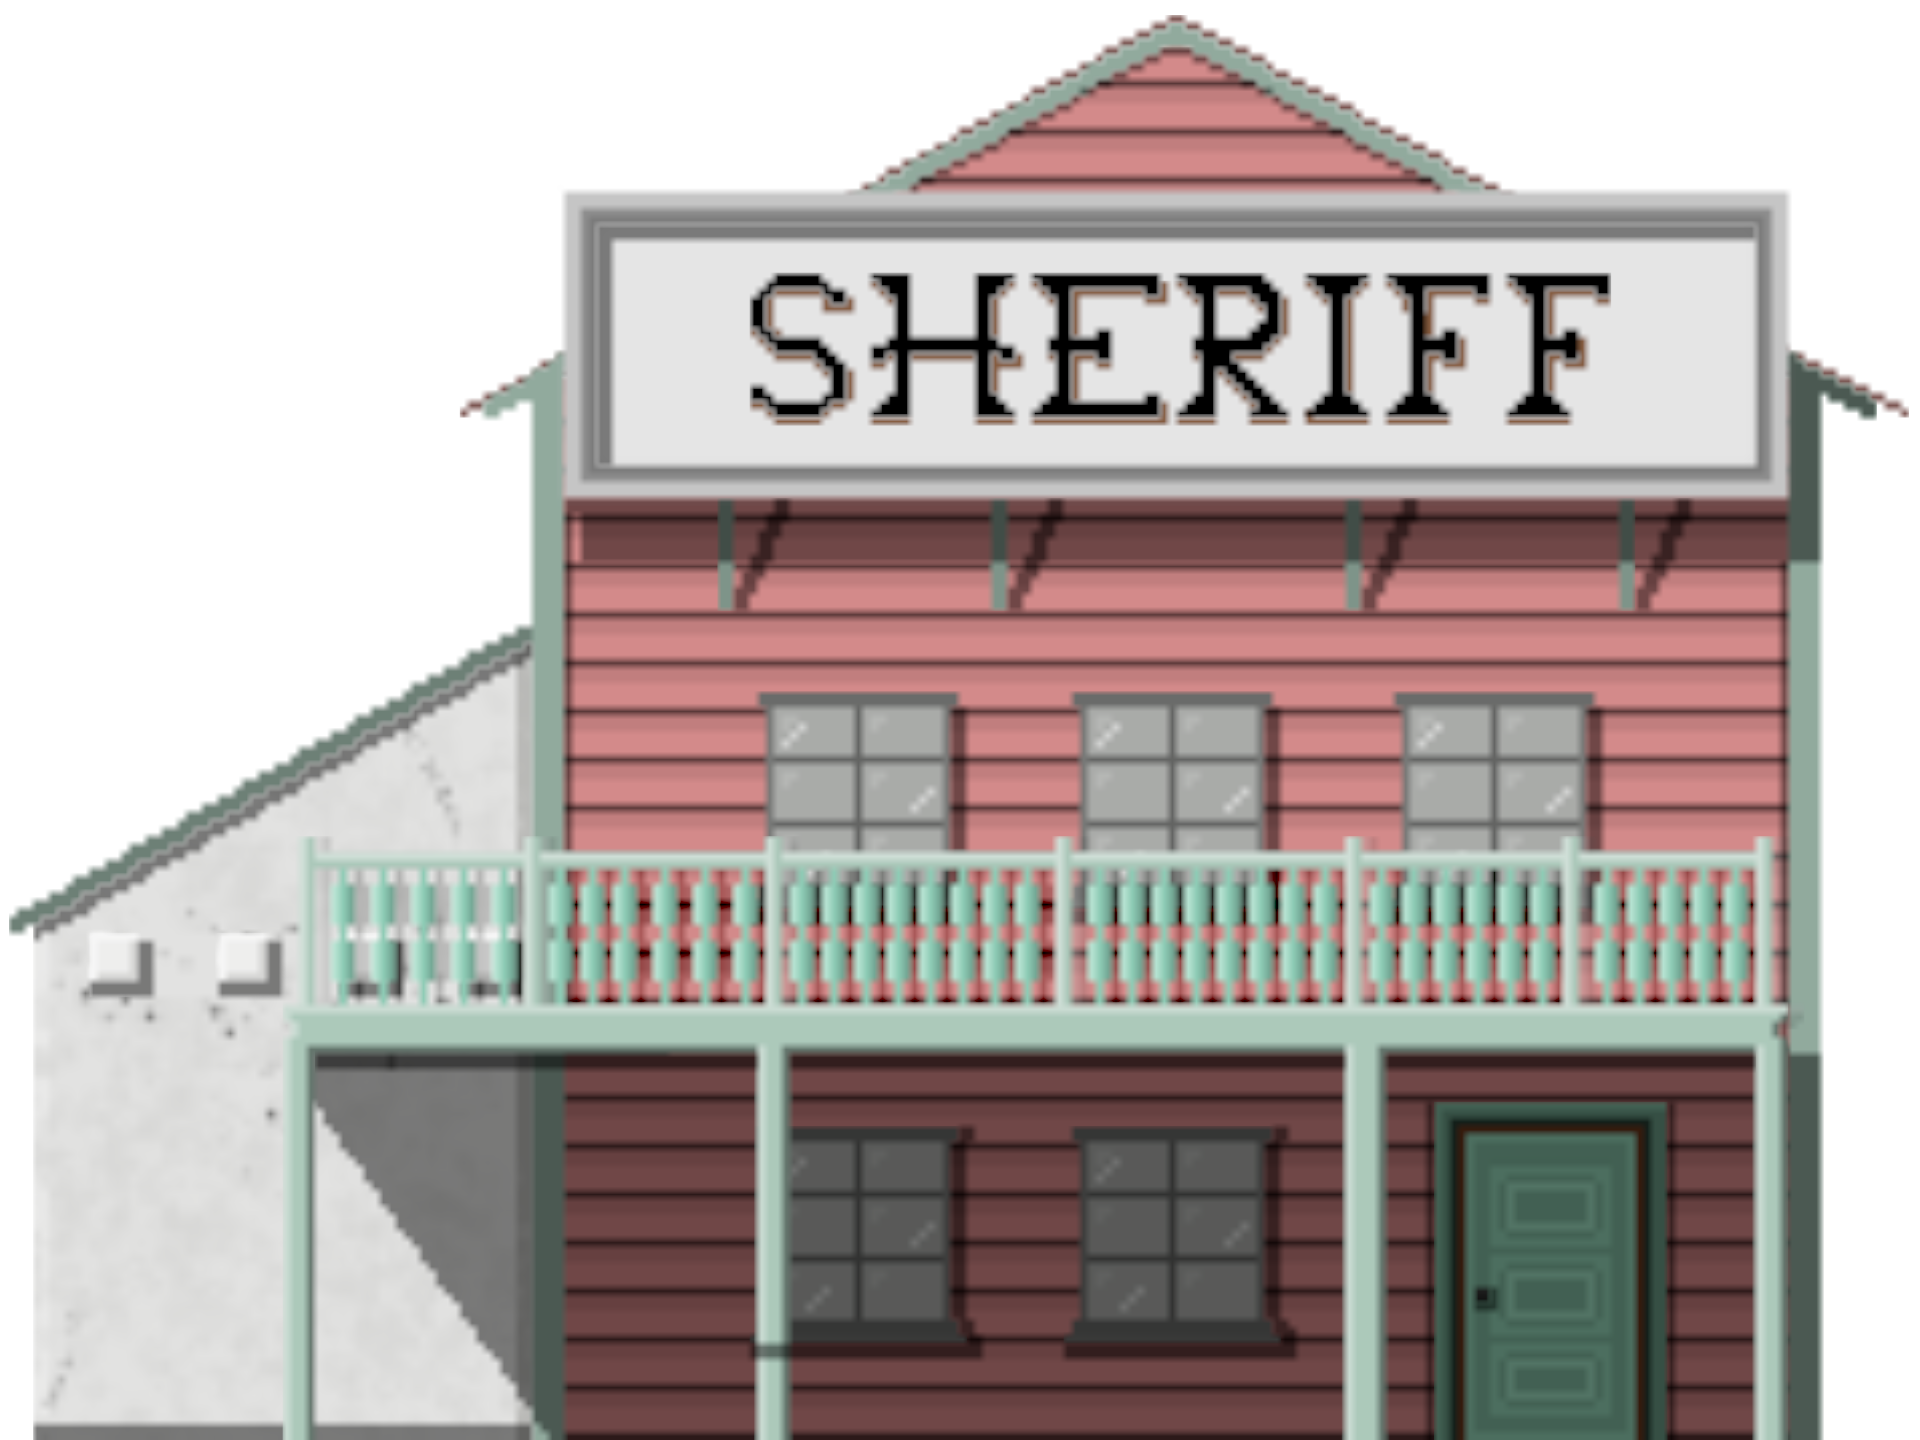 Sheriffoffice_highres.png